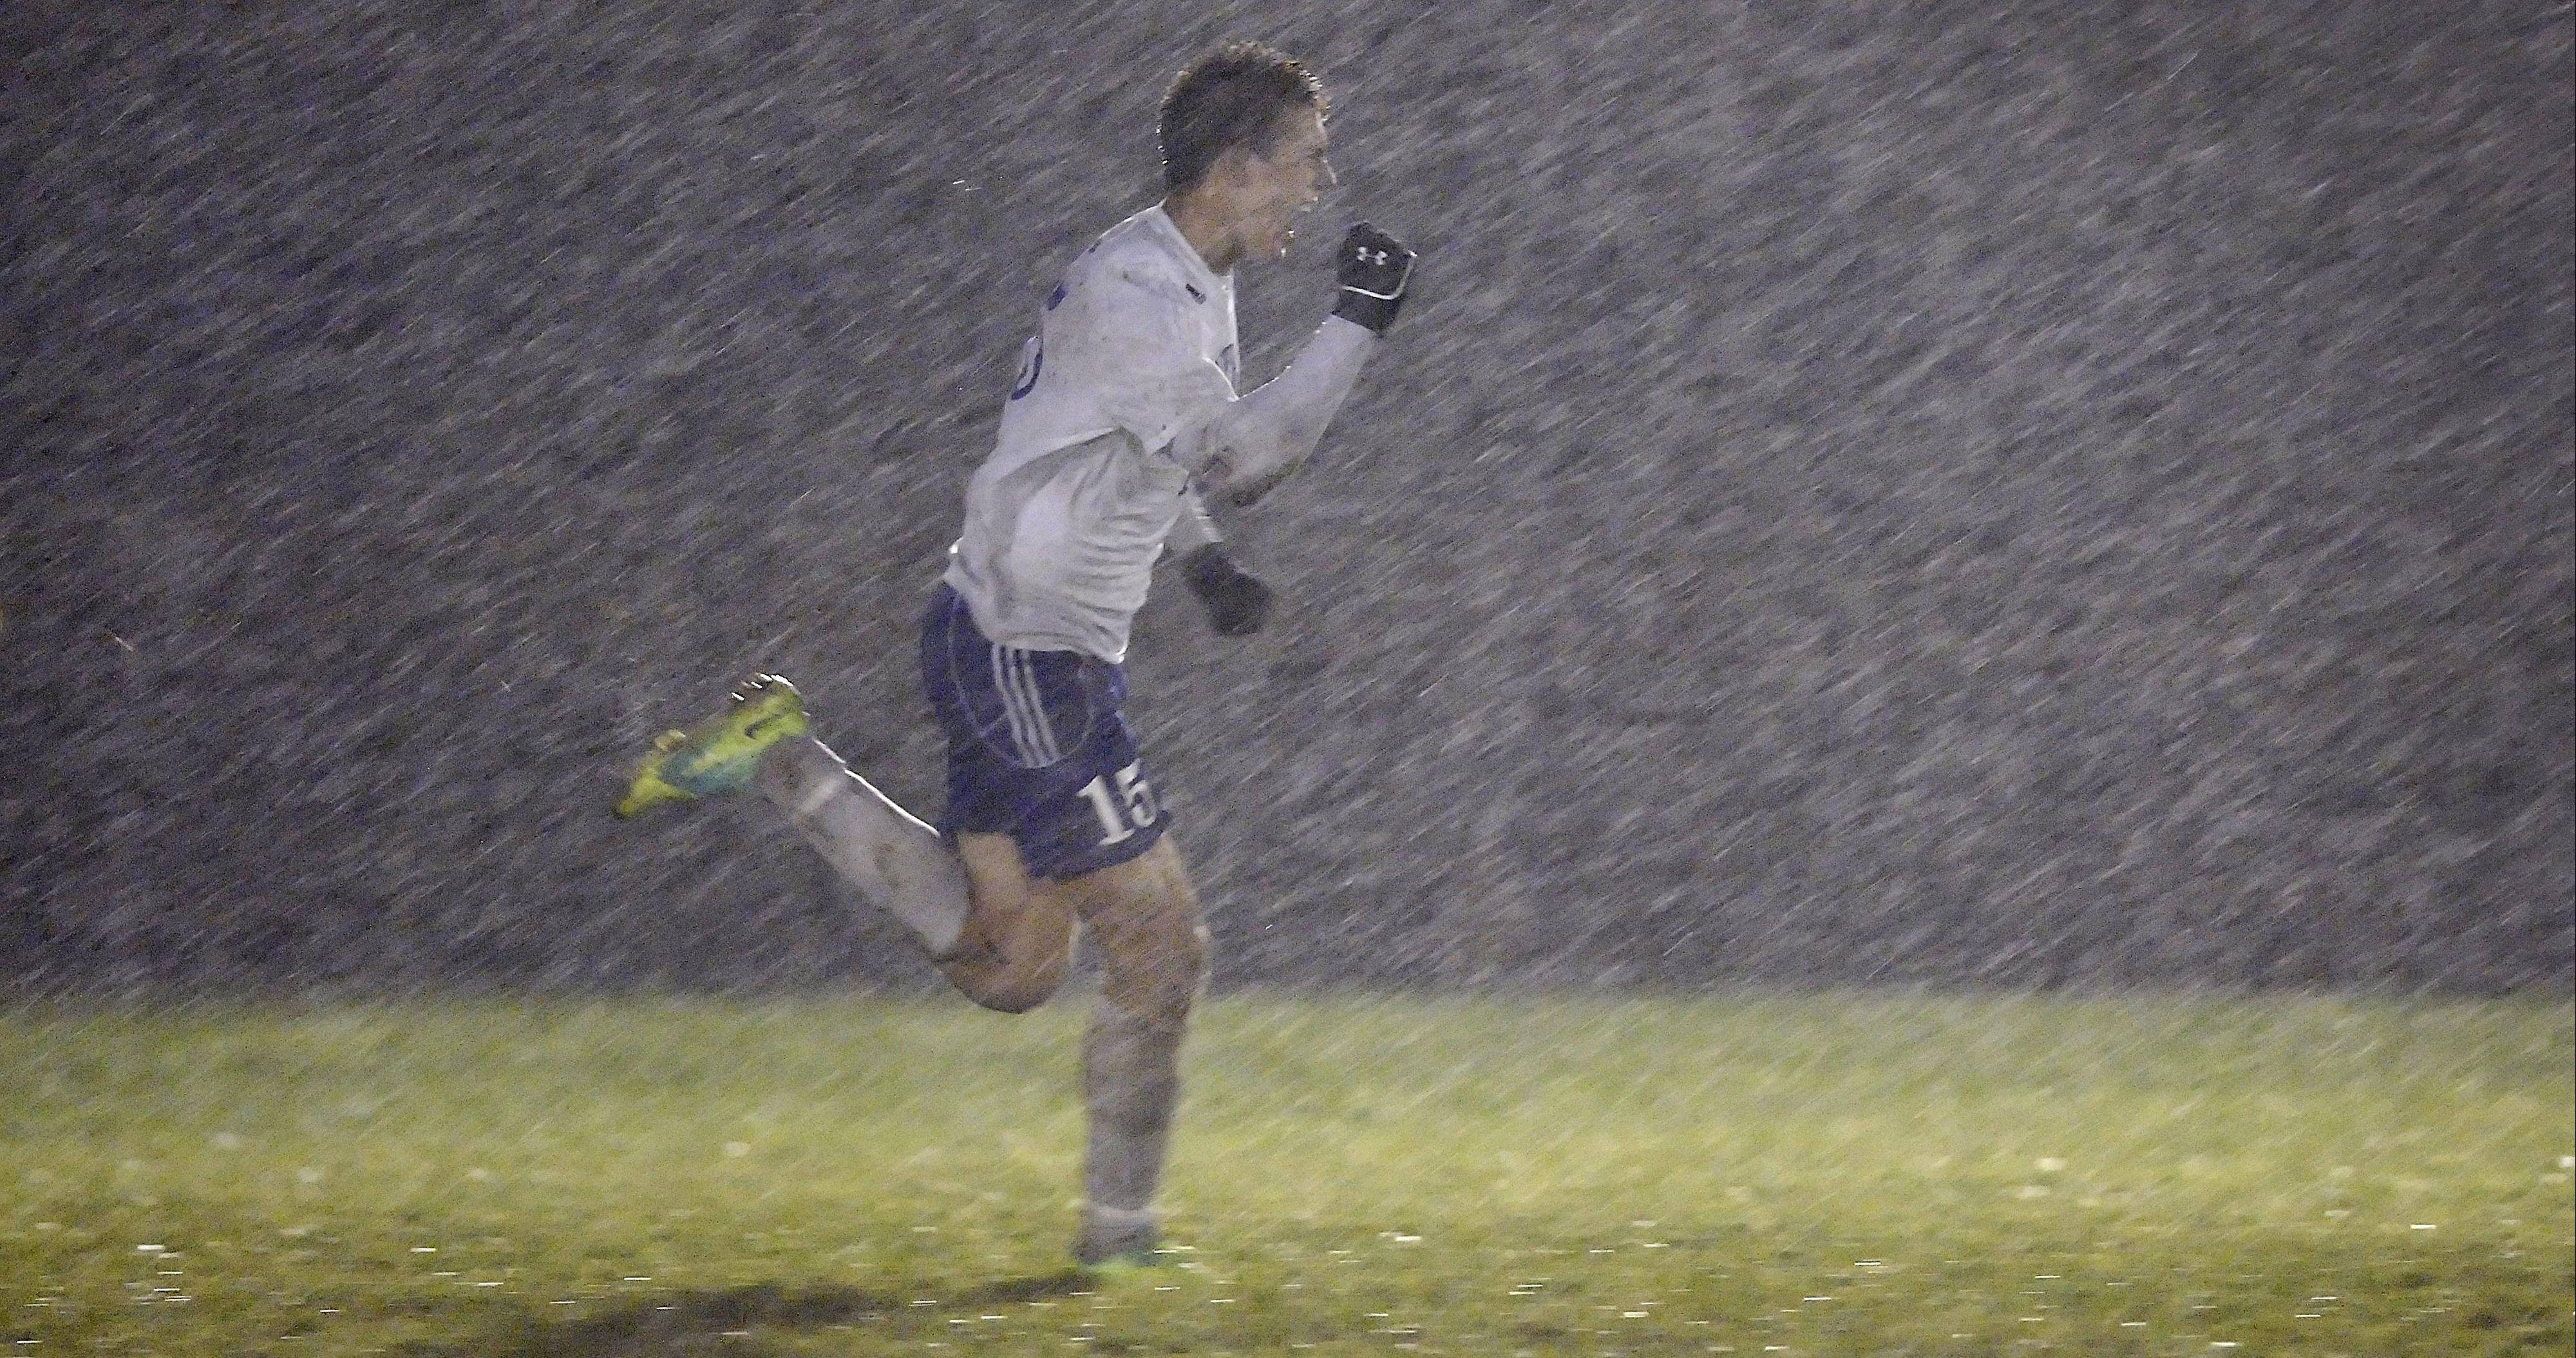 Burlington Central's Bryce Warner pumps his fist as he runs into the rain after scoring against Hampshire on a penalty kick in the first half Wednesday in the Burlington Central regional playoff game.